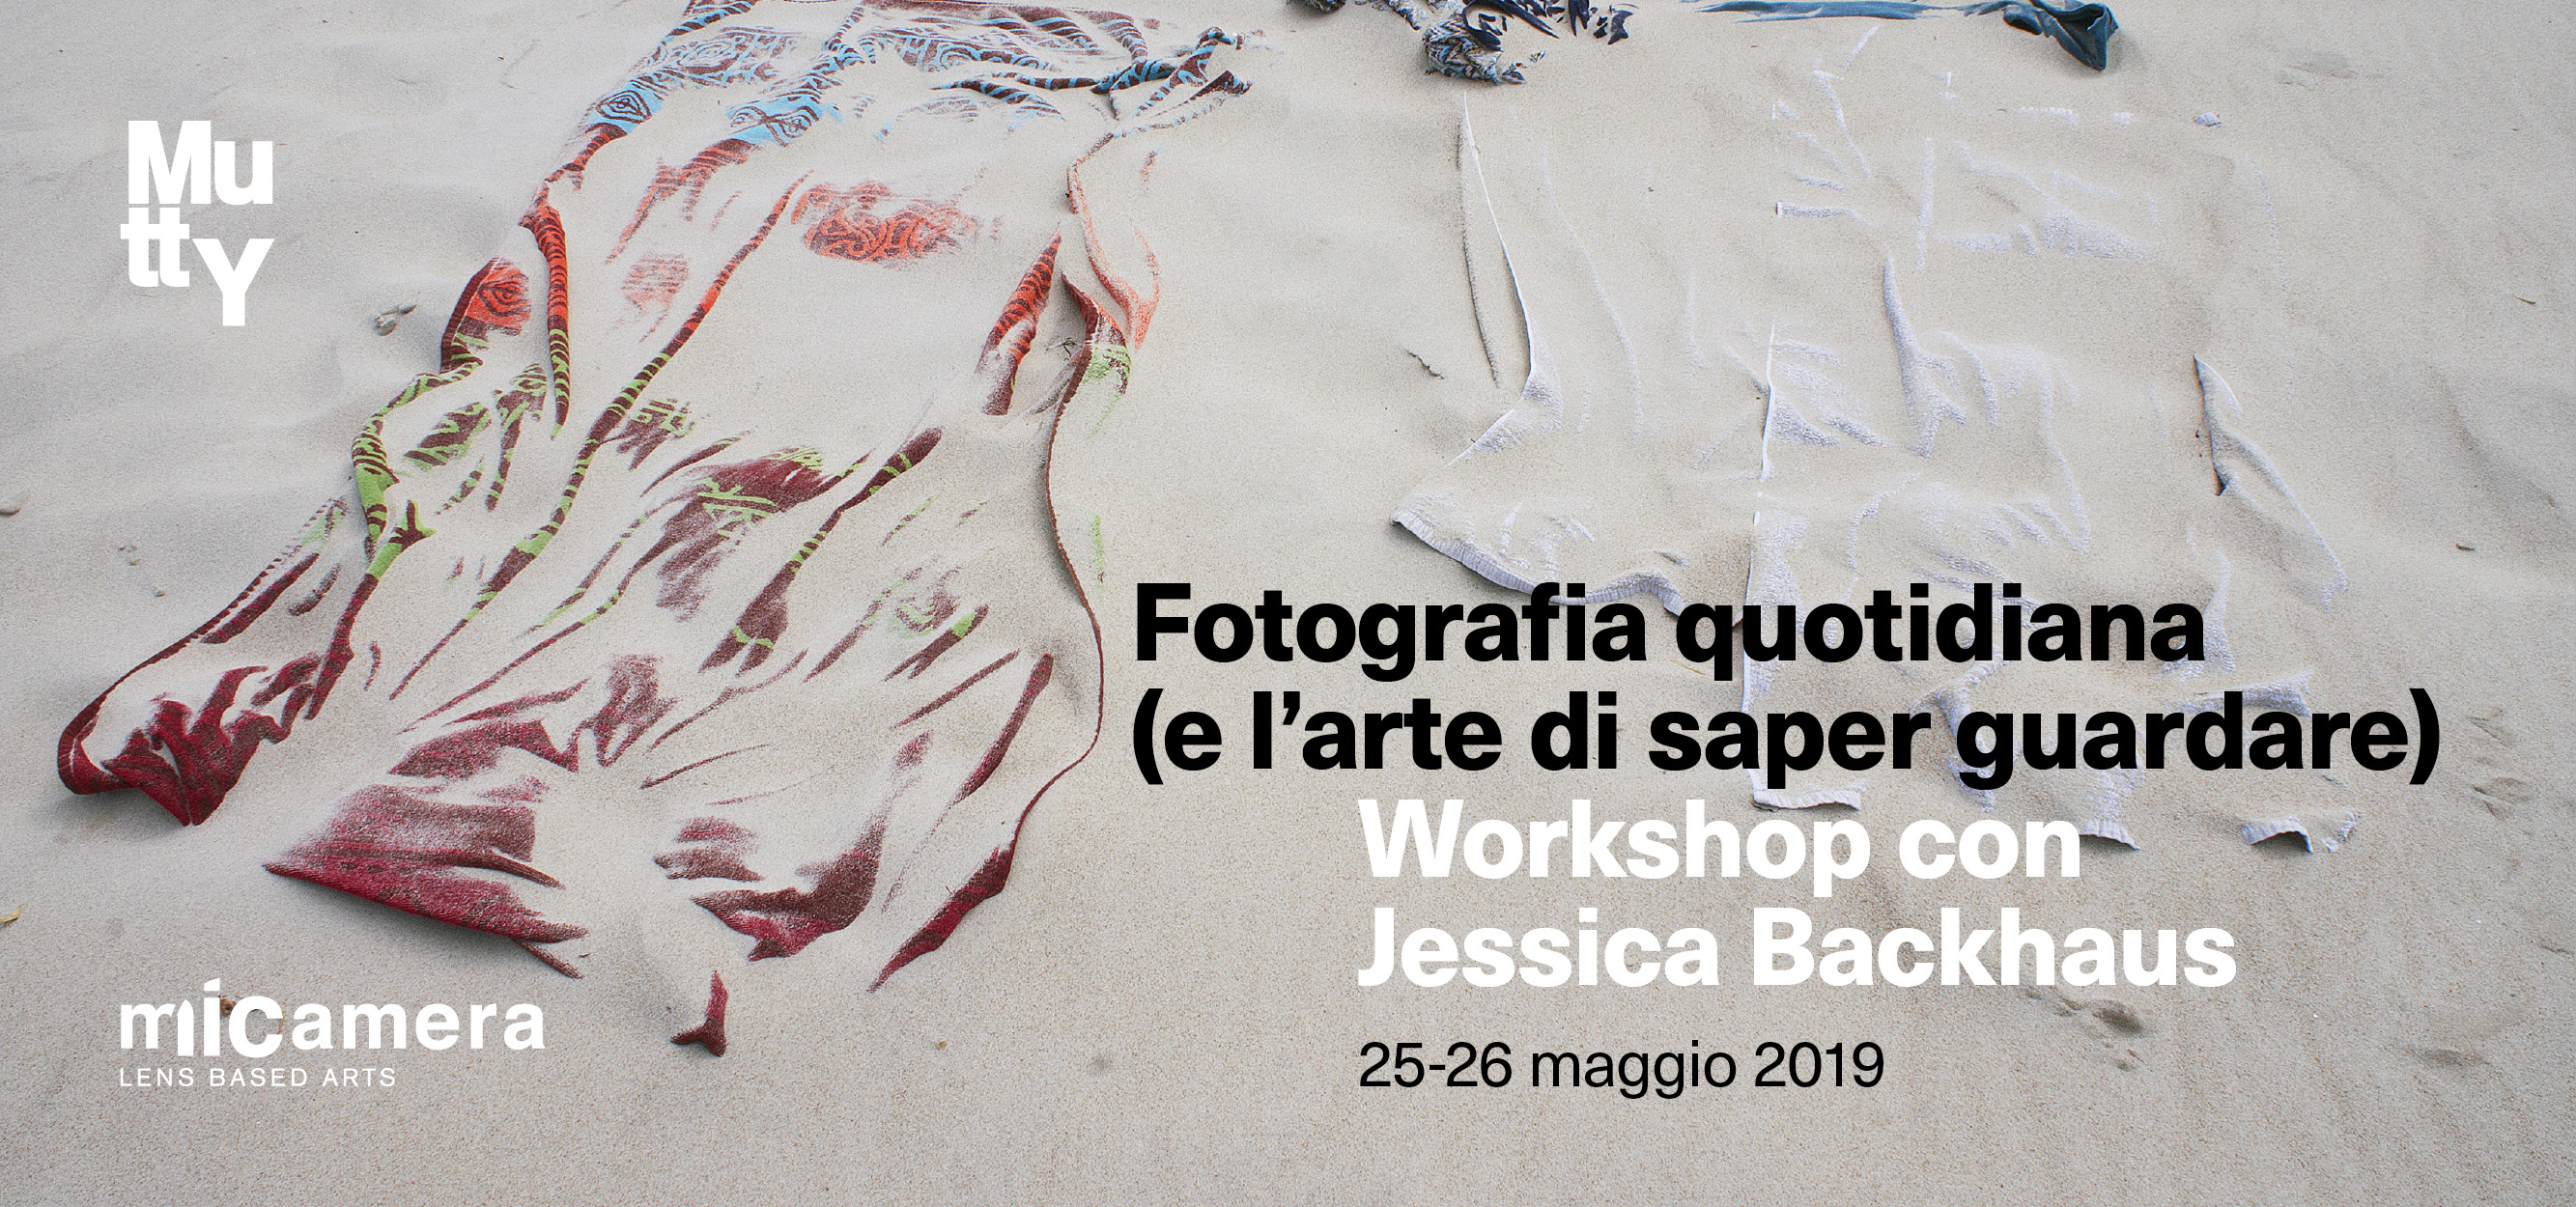 Workshop con Jessica Backhaus